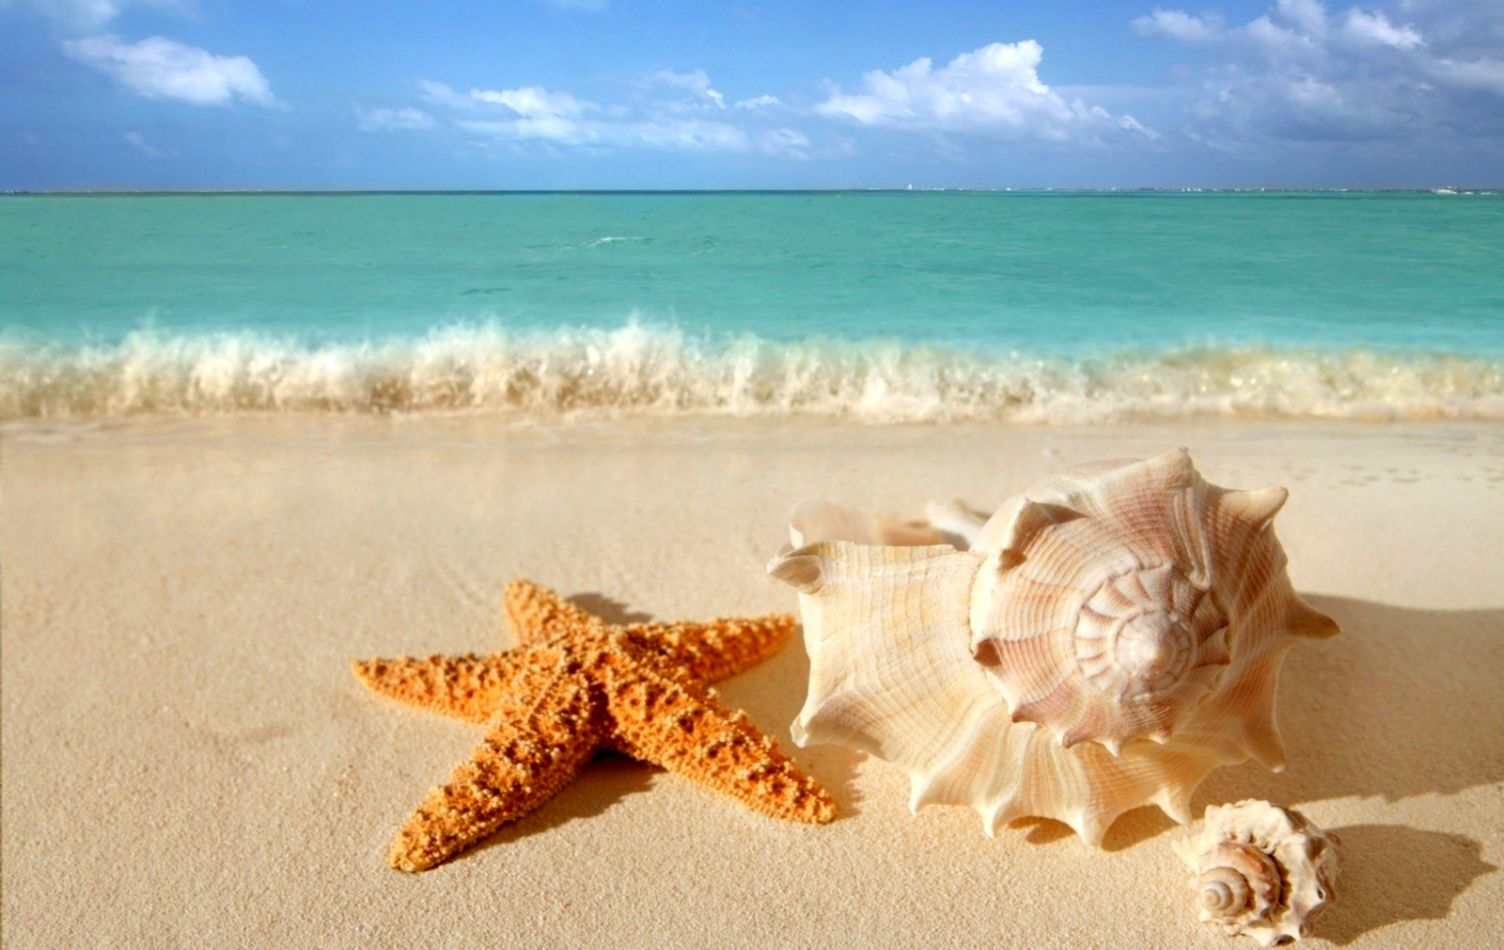 Starfish And Seashells On The Beach Wallpaper Hd Gold